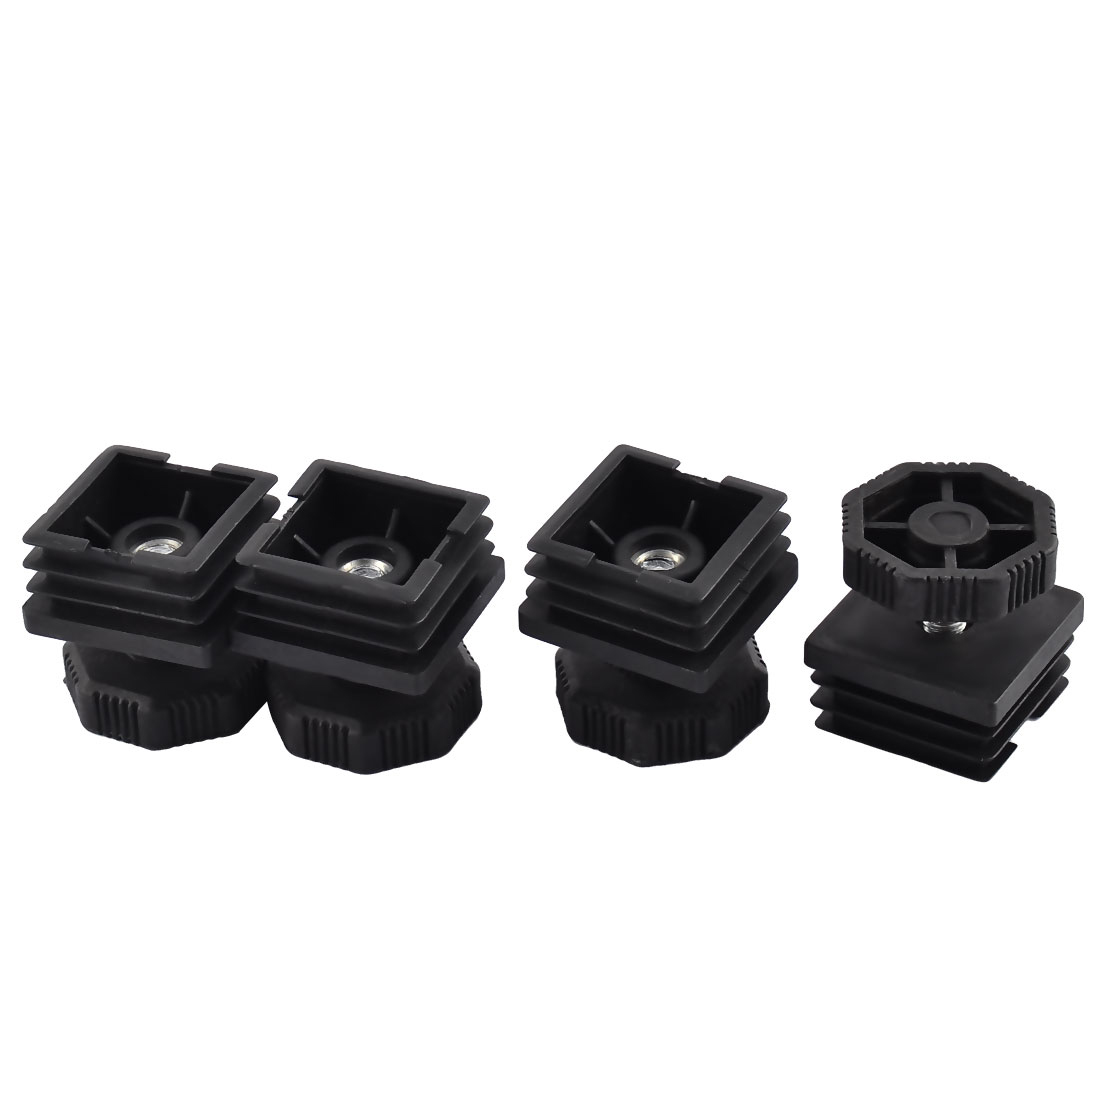 4 Sets 37mm Base Adjustable Leveling Foot 36mm x 36mm Square Tube Insert Cap Kit